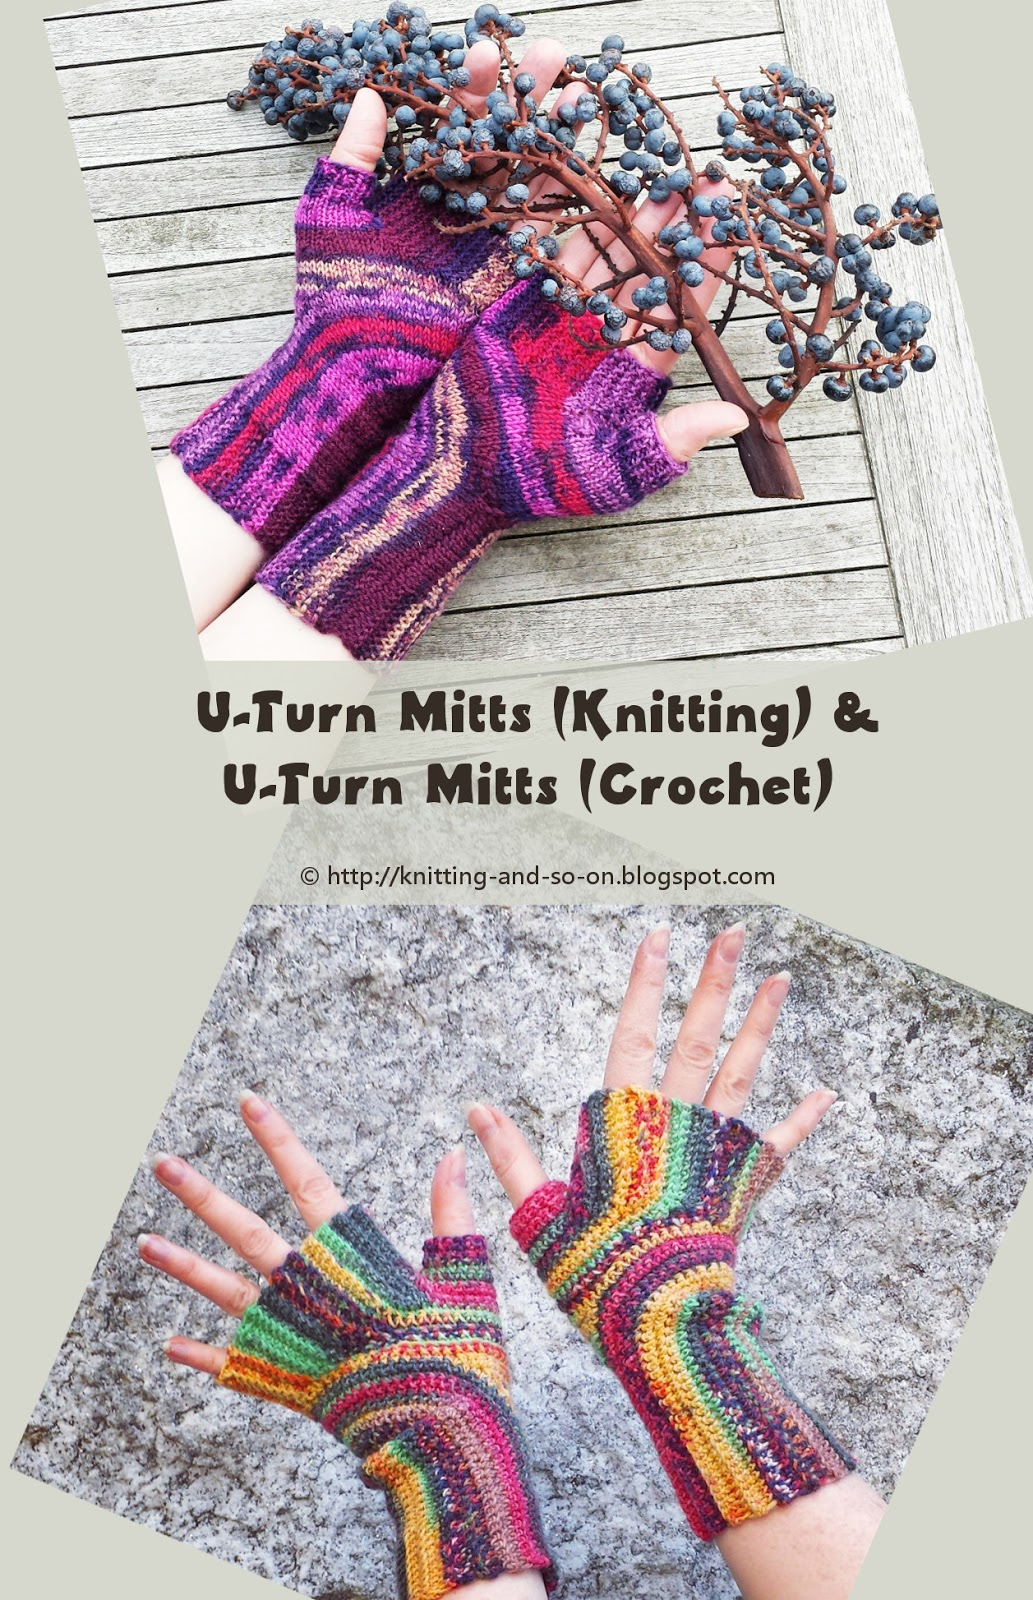 Knitting and so on: Patterns with a Knitting and Crochet Version